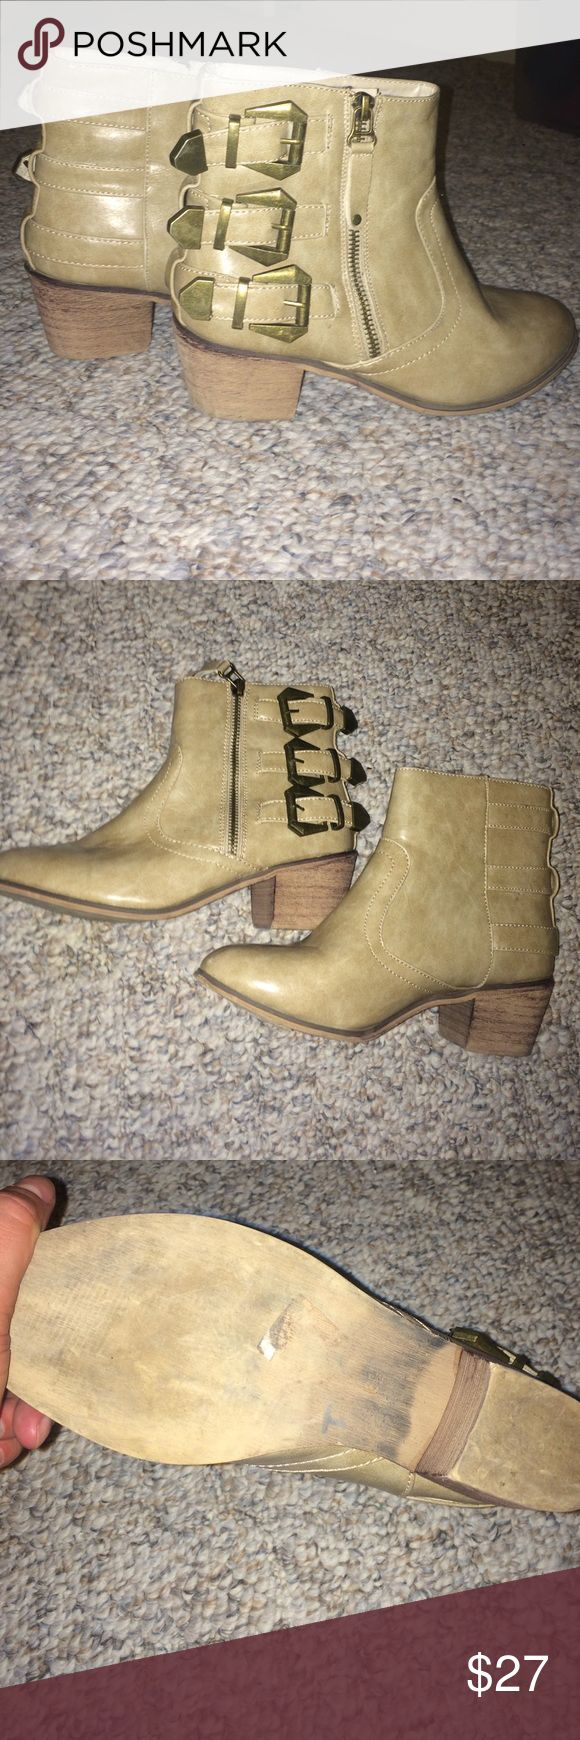 SUPER CUTE BOOTS!!!! These boots are in great condition with 3 buckles and a zipper on the outside. Cream colored. Perfect with skinny jeans!! bucco Shoes Ankle Boots & Booties